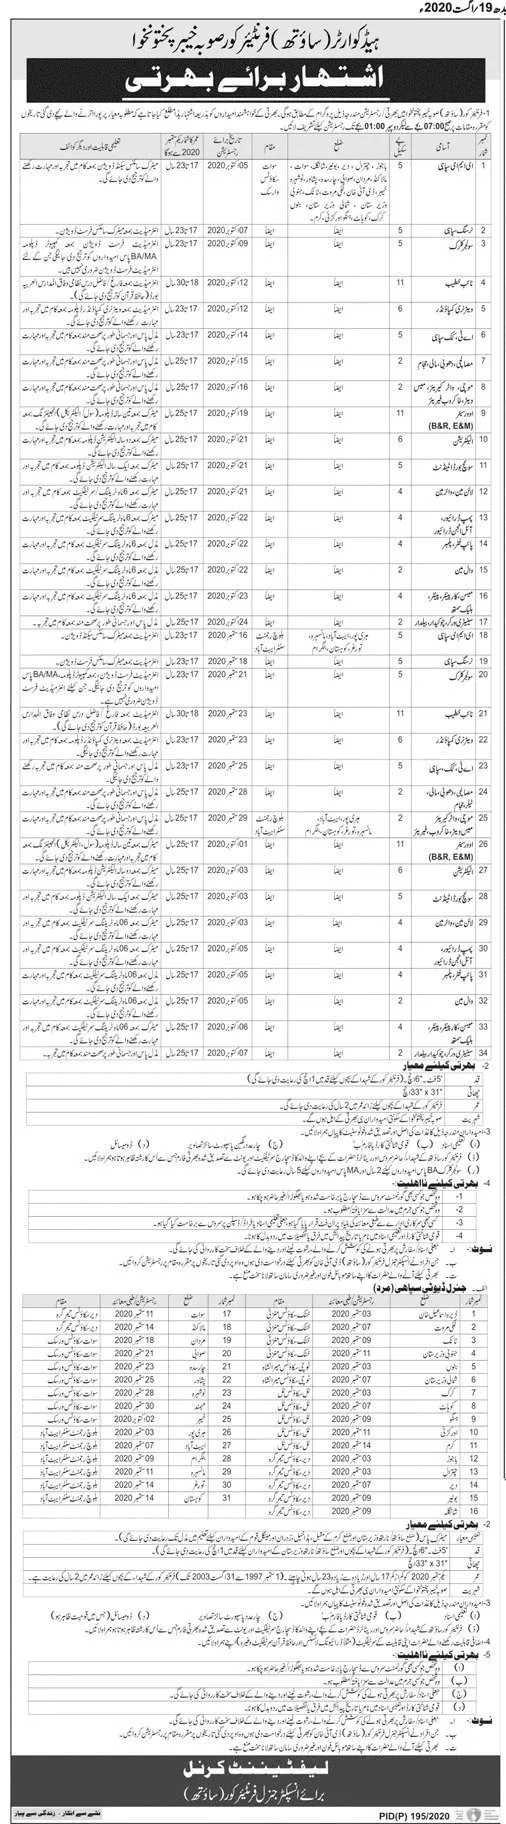 Job Vacancies: Sr.No	Name of Post	Qualification 01.	EME Sipahi	Metric 02.	Nursing Sipahi	Intermediate 03.	Soldier Clerk	Intermediate 04.	Naib Khateeb	Intermediate 05.	Veterinary Compunder	Intermediate 06.	AT Cook Sipahi	Middle 07.	Misalchi, Dhobi etc	Middle 08.	Mochi etc	Middle 09.	Overseer	Metric 10.	Electrician	Metric 11.	Switch Board Attendant	Metric 12.	Line man Water man	Metric 13.	Pump Driver	Metric 14.	Pipe Fitter, Plumber	Middle 15.	Wall Man	Middle 16.	Mason / Carpenter	Middle 17.	Sanitary Worker	Middle How To Apply for Jobs in FC South: Candidates bring following original and attested documents at the time of interview Educational Certificates CNIC 4 colored Passport size Photographs Domicile Eligible candidates reach their center for registration from 07:00 AM – 01:00 PM. No TA/DA will be given. Children of martyred and retired person will bring discharge and selection certificate, to show their relation. The last date to apply is September 30, 2020. Eligibility Criteria Height:   5 feet 6 In Chest:     31 x 33 In Age:        17 to 25 (2 year relaxation for the children of Frontier Corps) Only Citizens of KPK are eligible